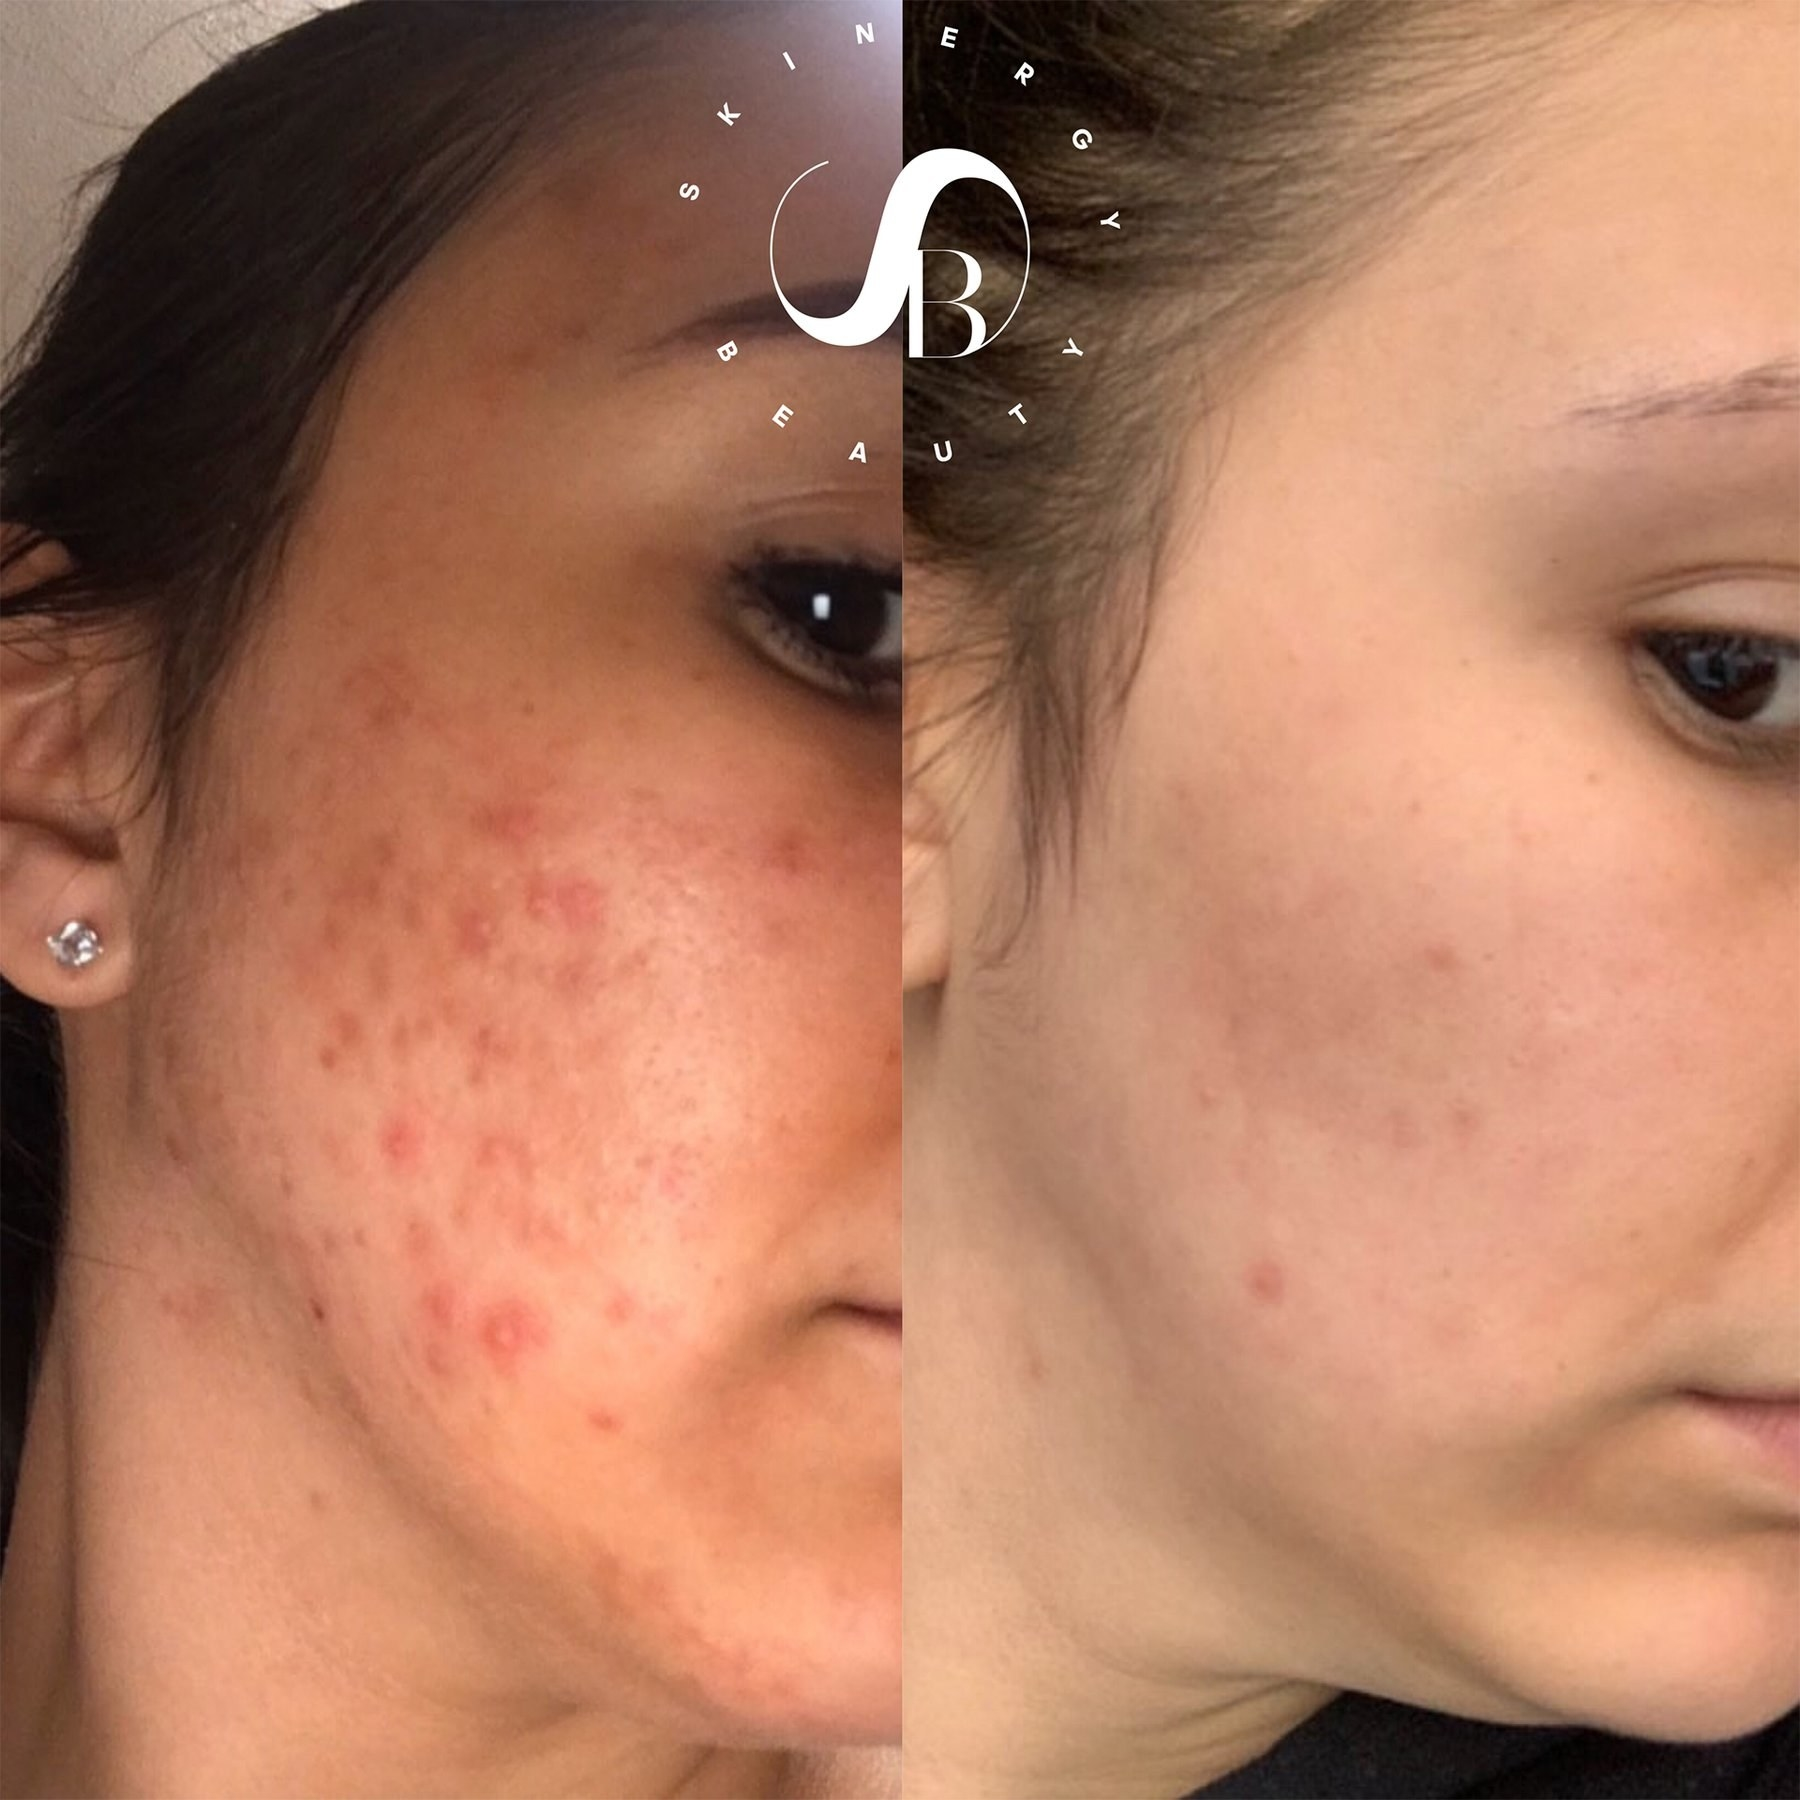 reviewer pic showing spots dramatically lightened on skin thanks to the product